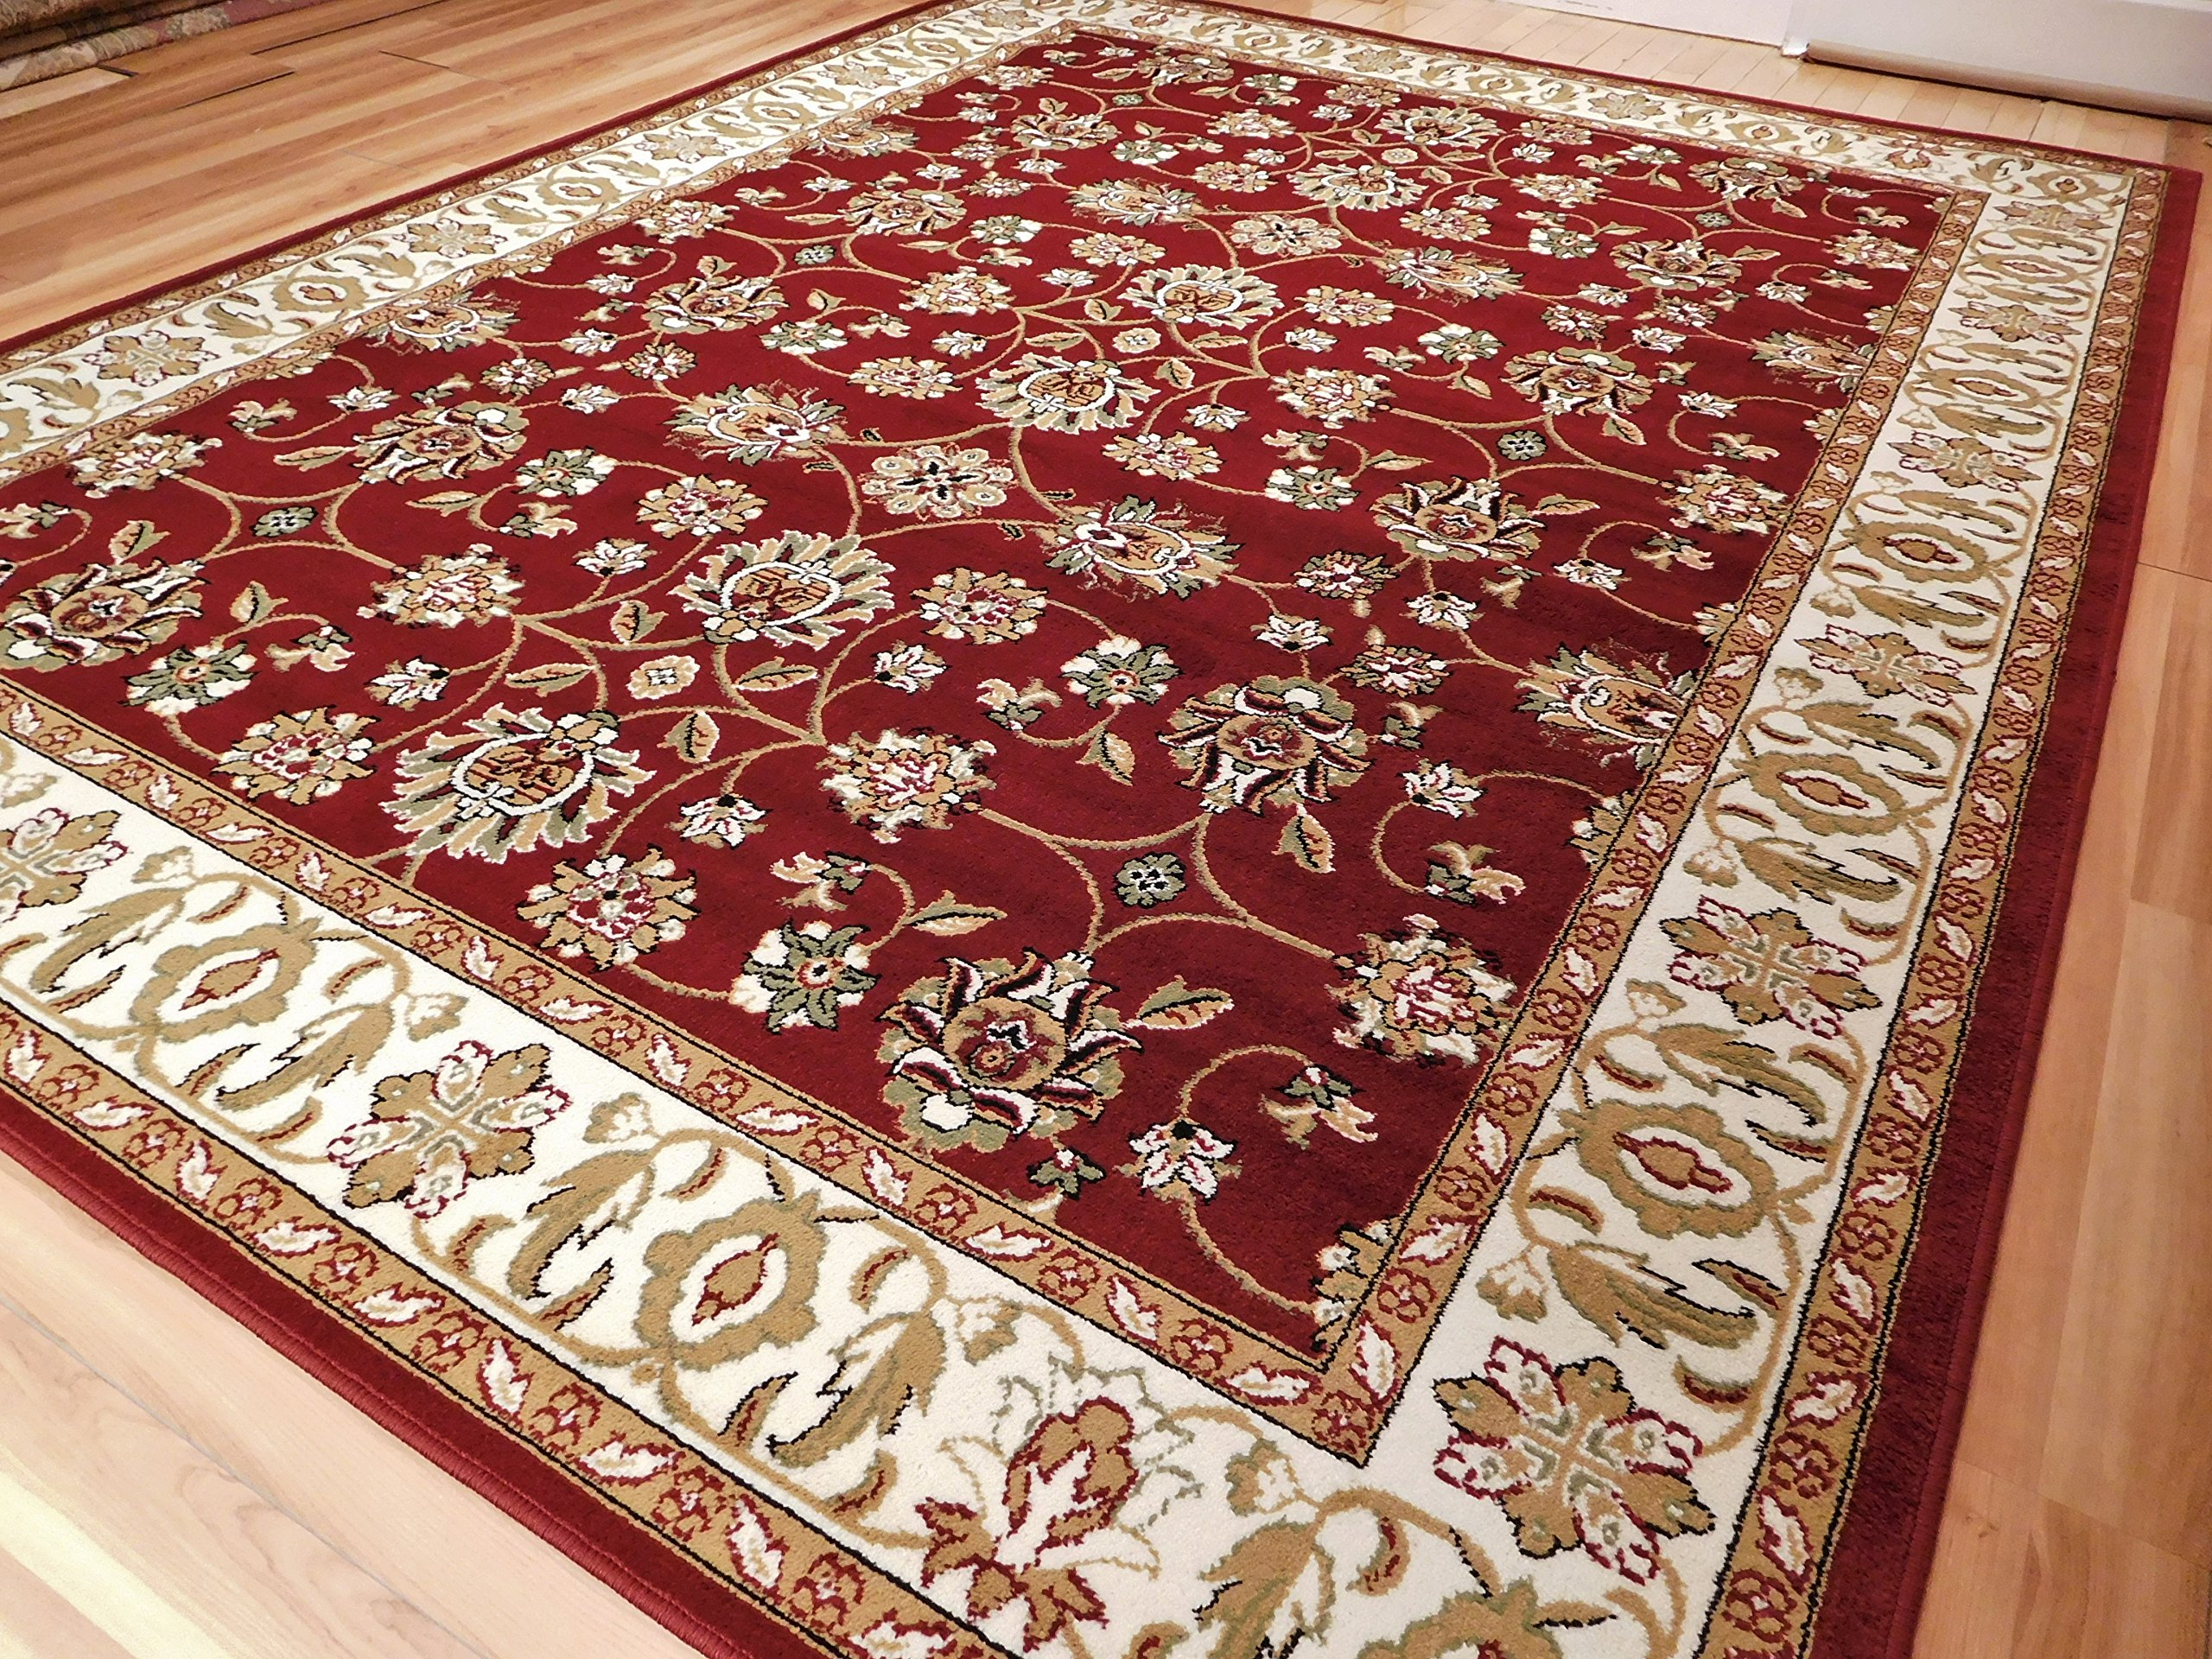 Traditional Area Rug Scatter 2x3 Red Foyer Rugs 2x4 Persian All-Over Style Bathroom Burgundy Carpet Washable Rugs, 2x3 Door Mat